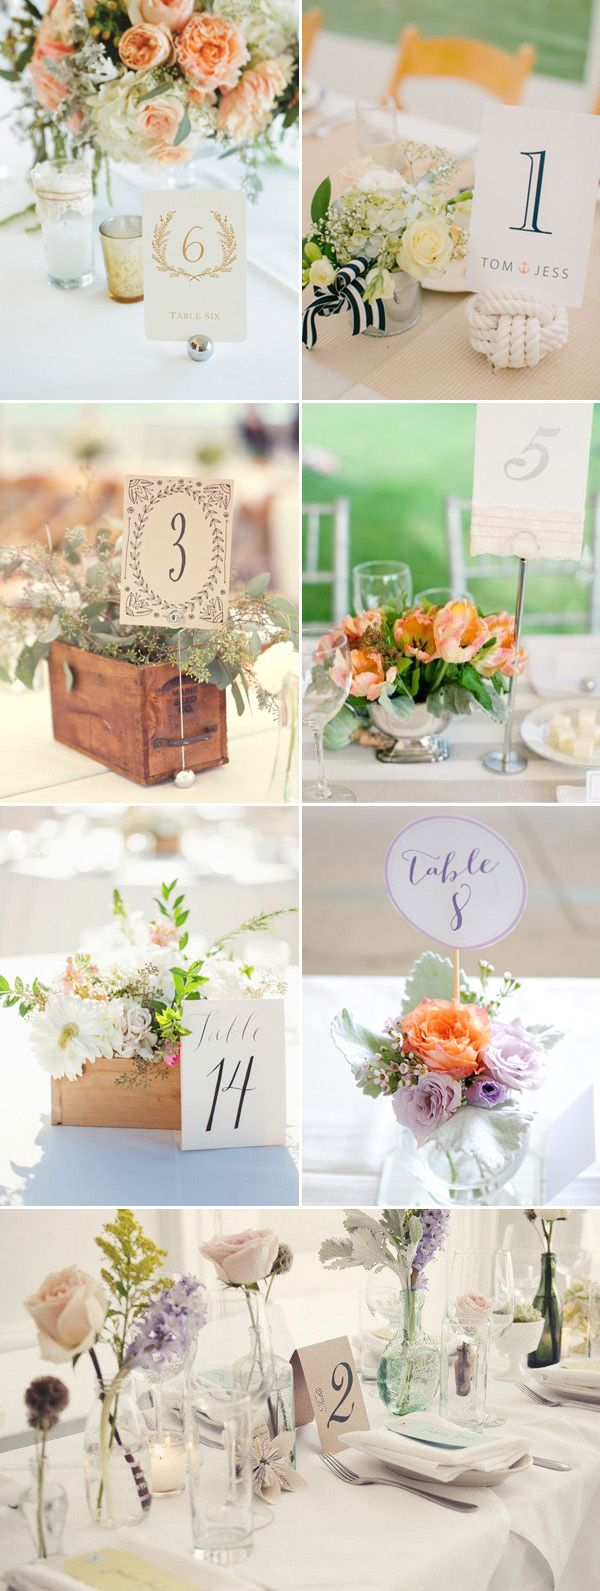 43 Creative Diy Ideas With Shoe Boxes: Table Number Holders On Pinterest